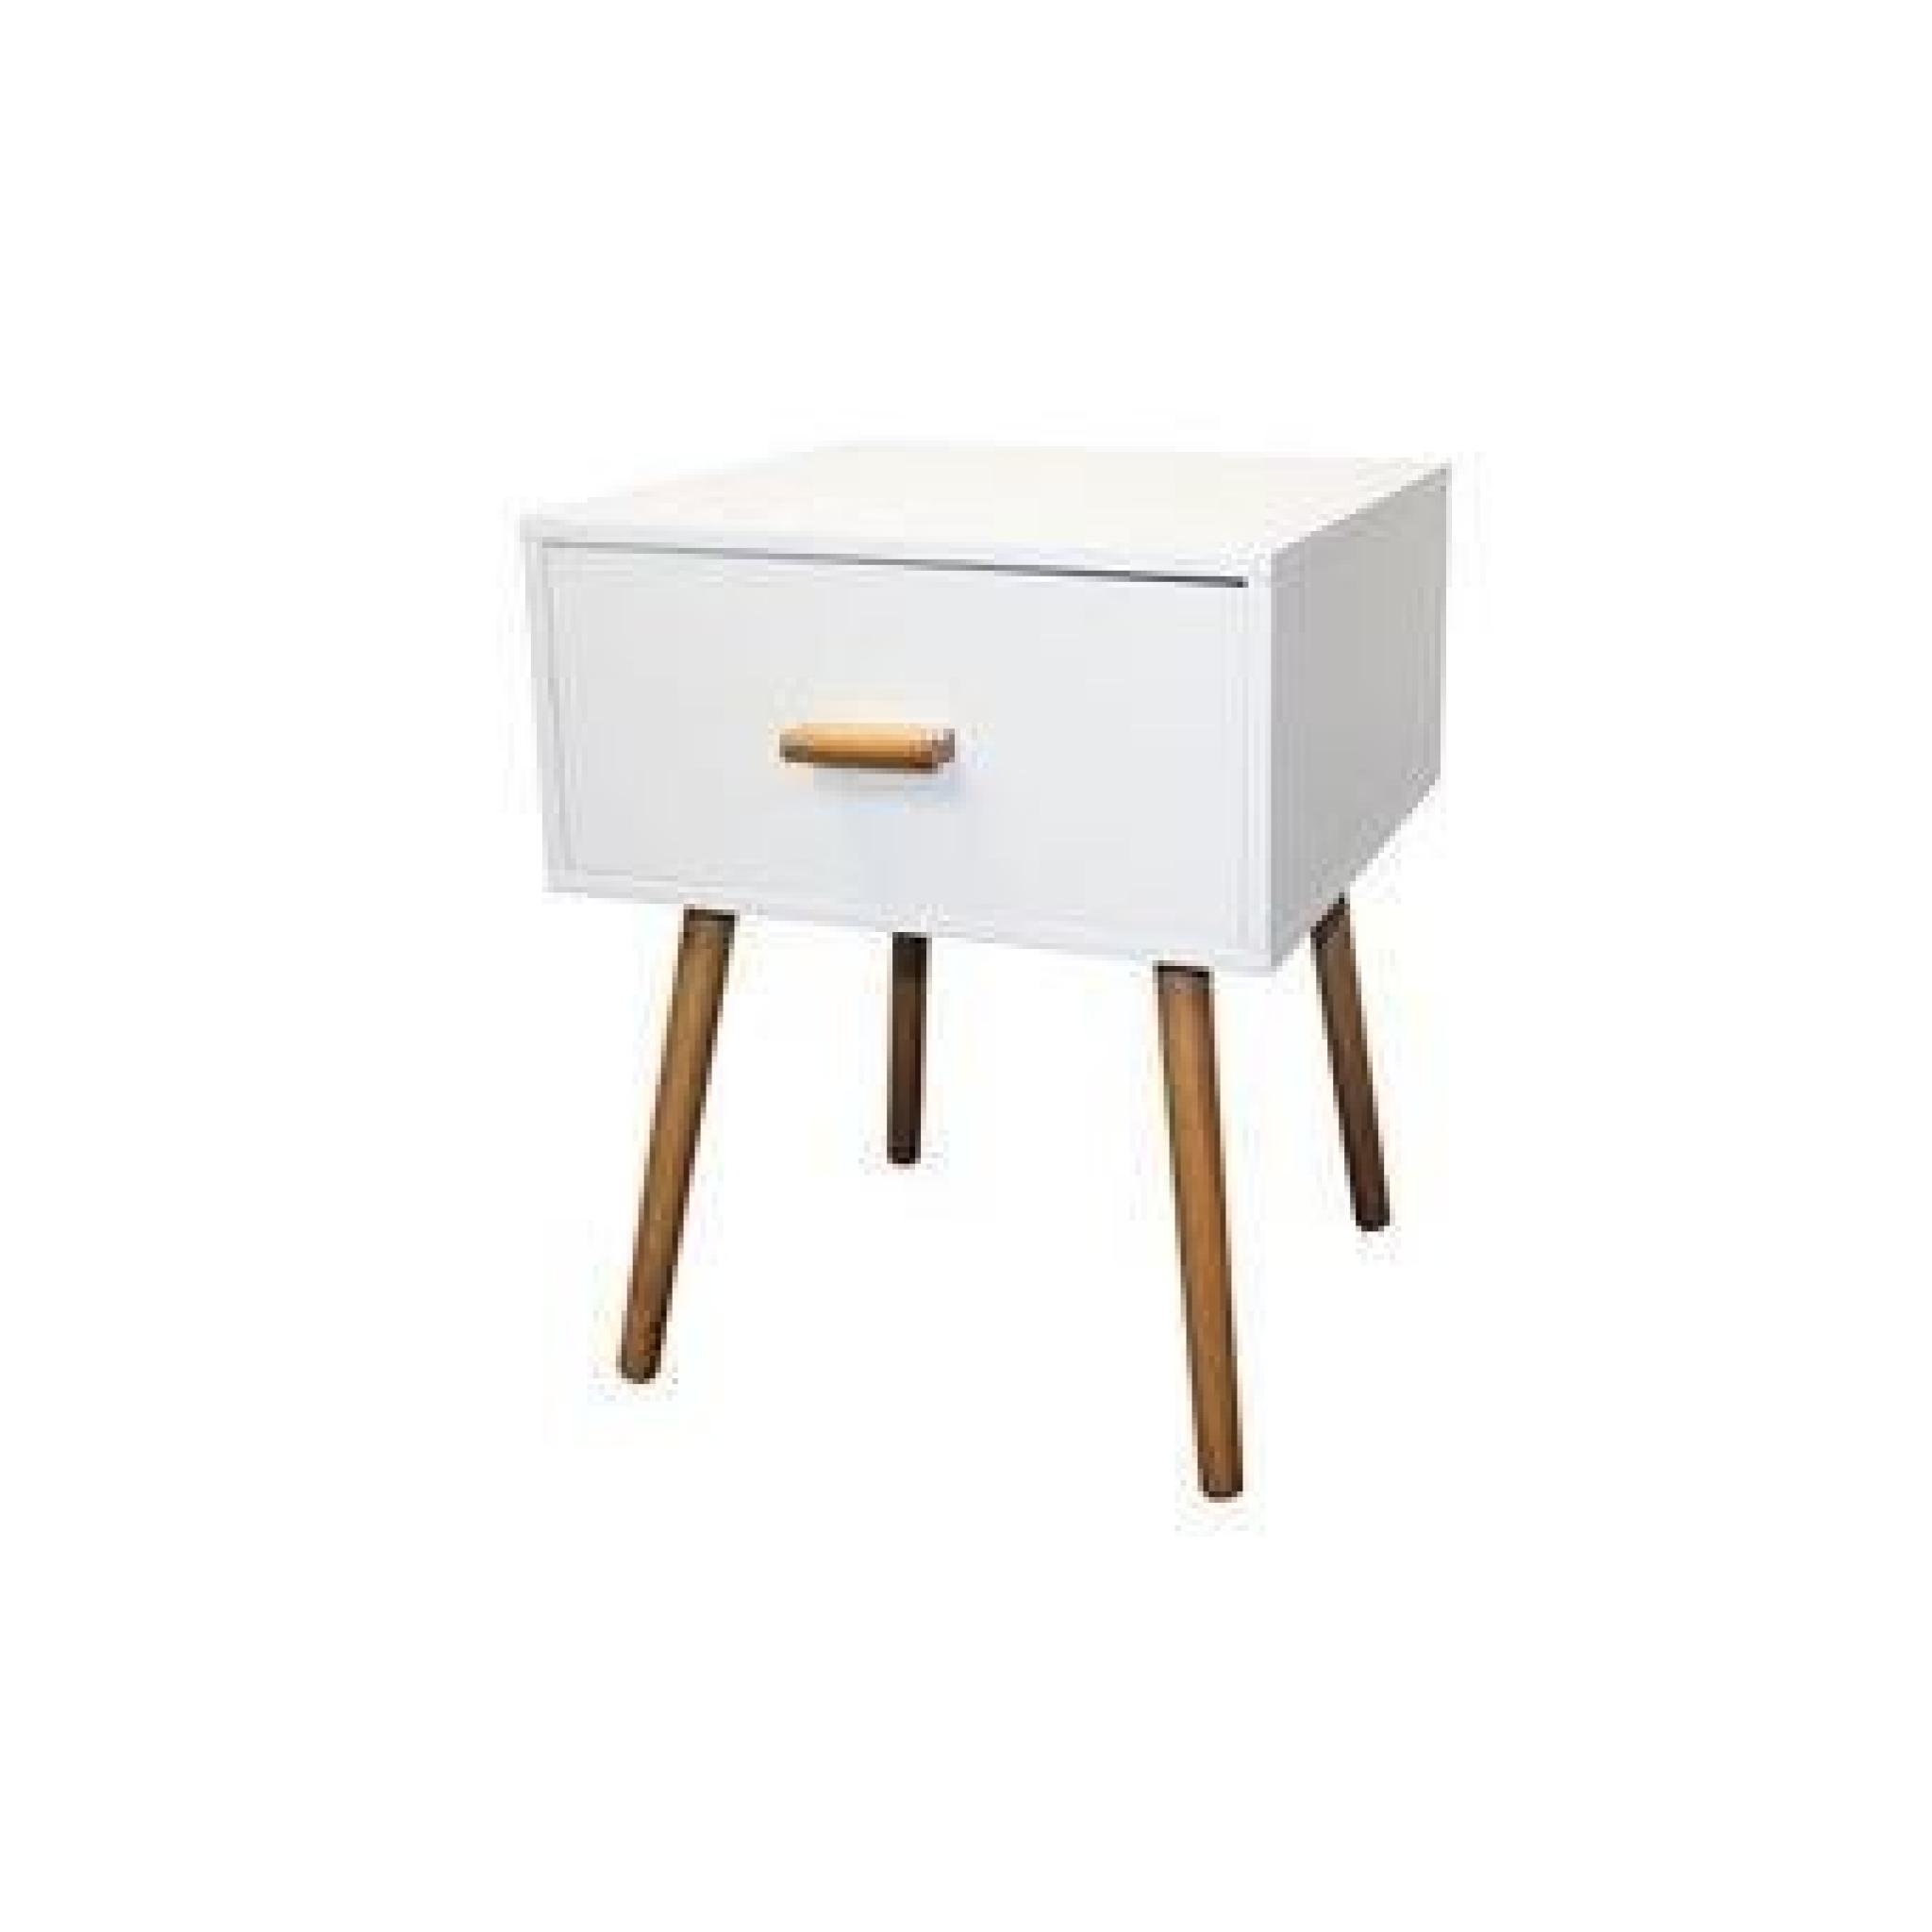 Table de chevet blanc design scandinave achat vente table basse pas cher - Table de chevet design laque blanc ...